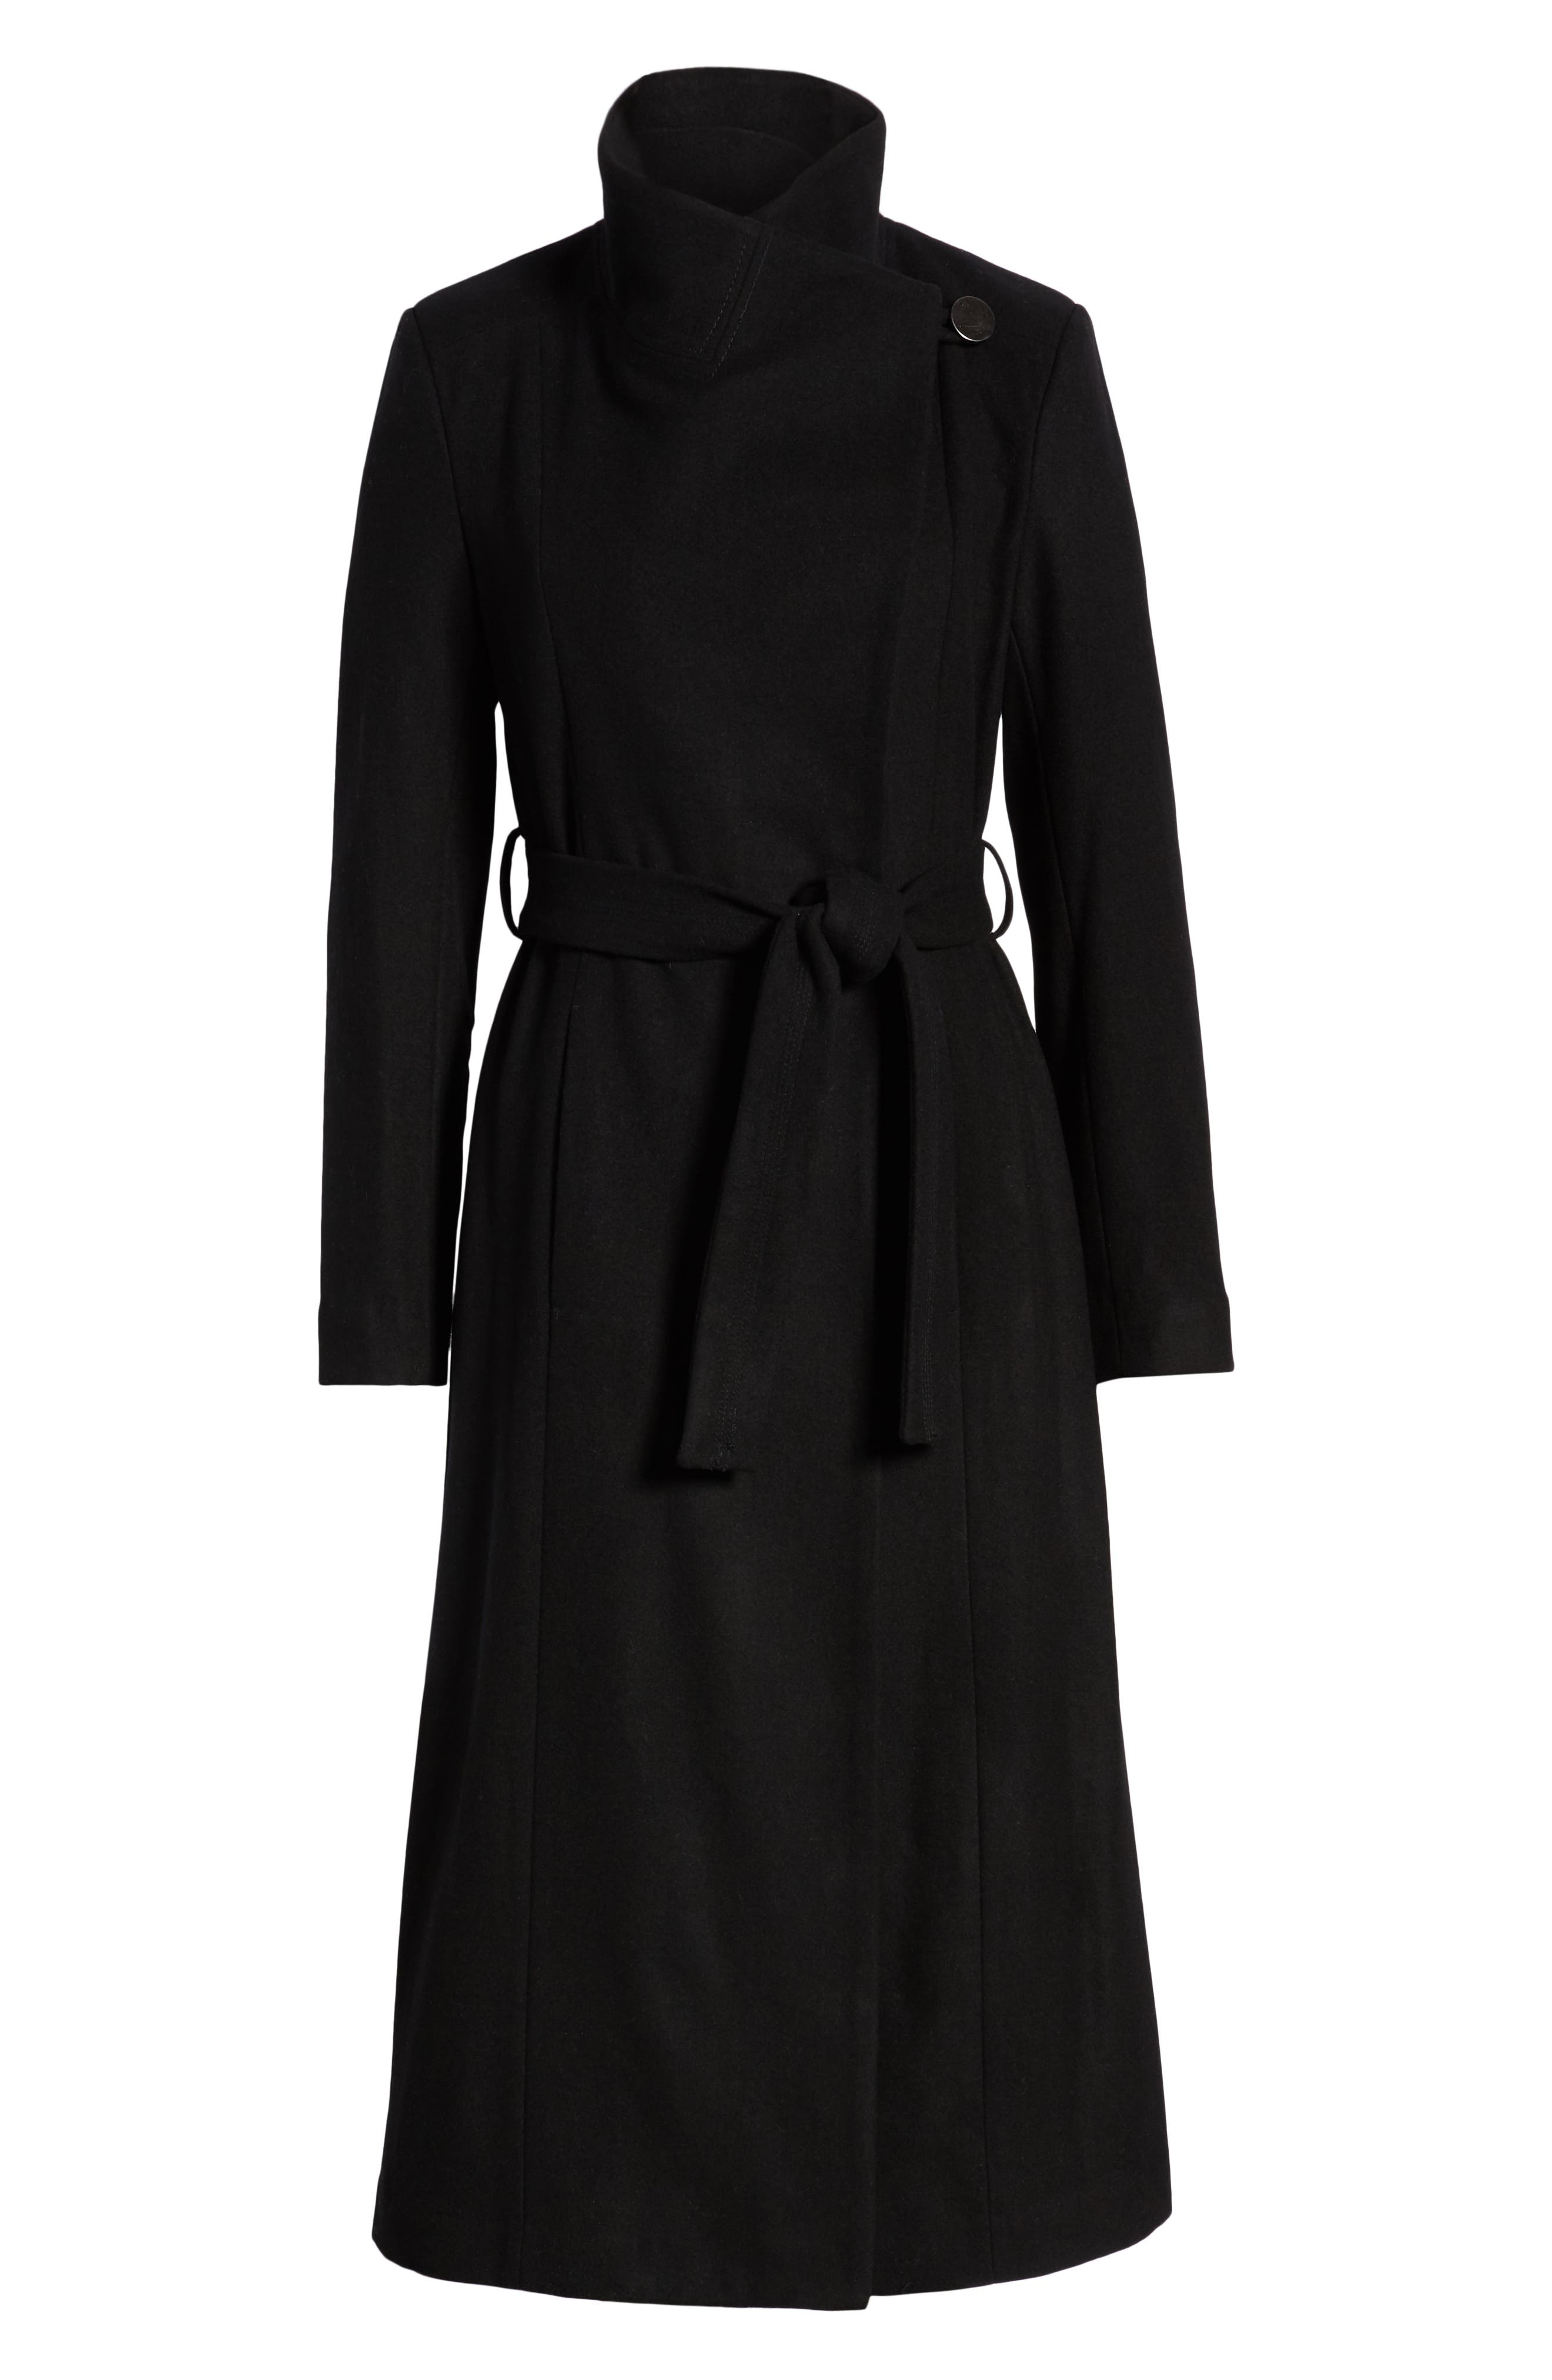 KENNETH COLE NEW YORK, Fencer Melton Wool Maxi Coat, Alternate thumbnail 6, color, 001